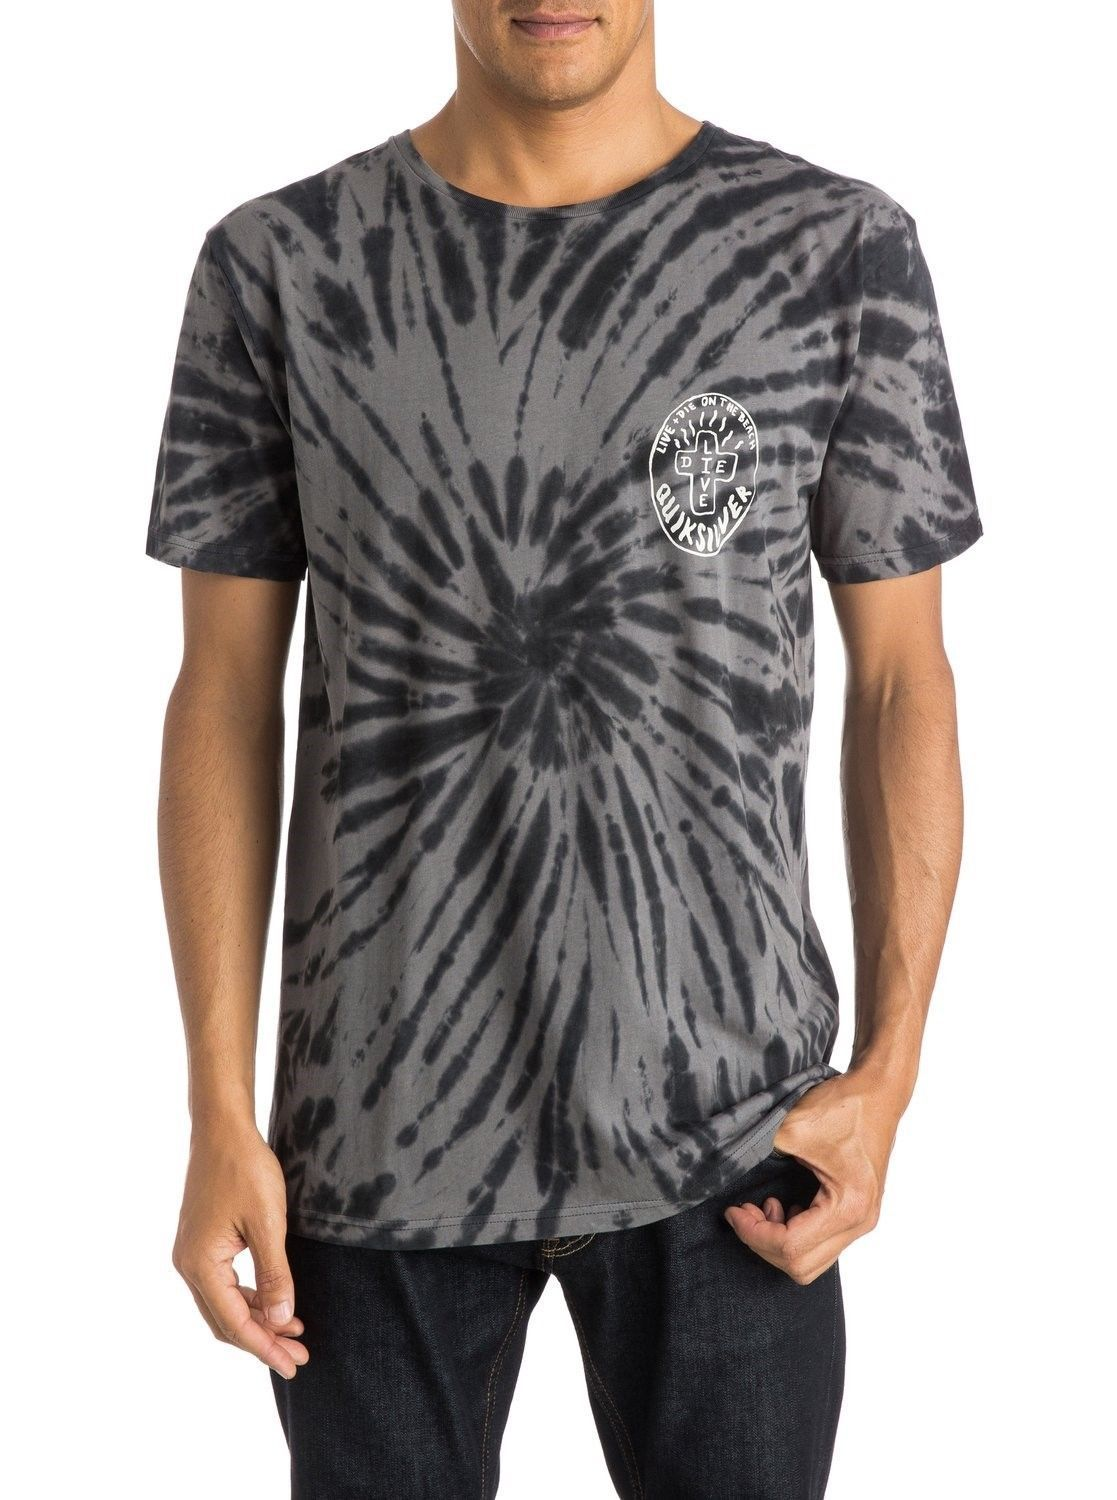 Quiksilver Men's Tee Shirt Surfing Casual Live + Die On The Beach T-Shirt